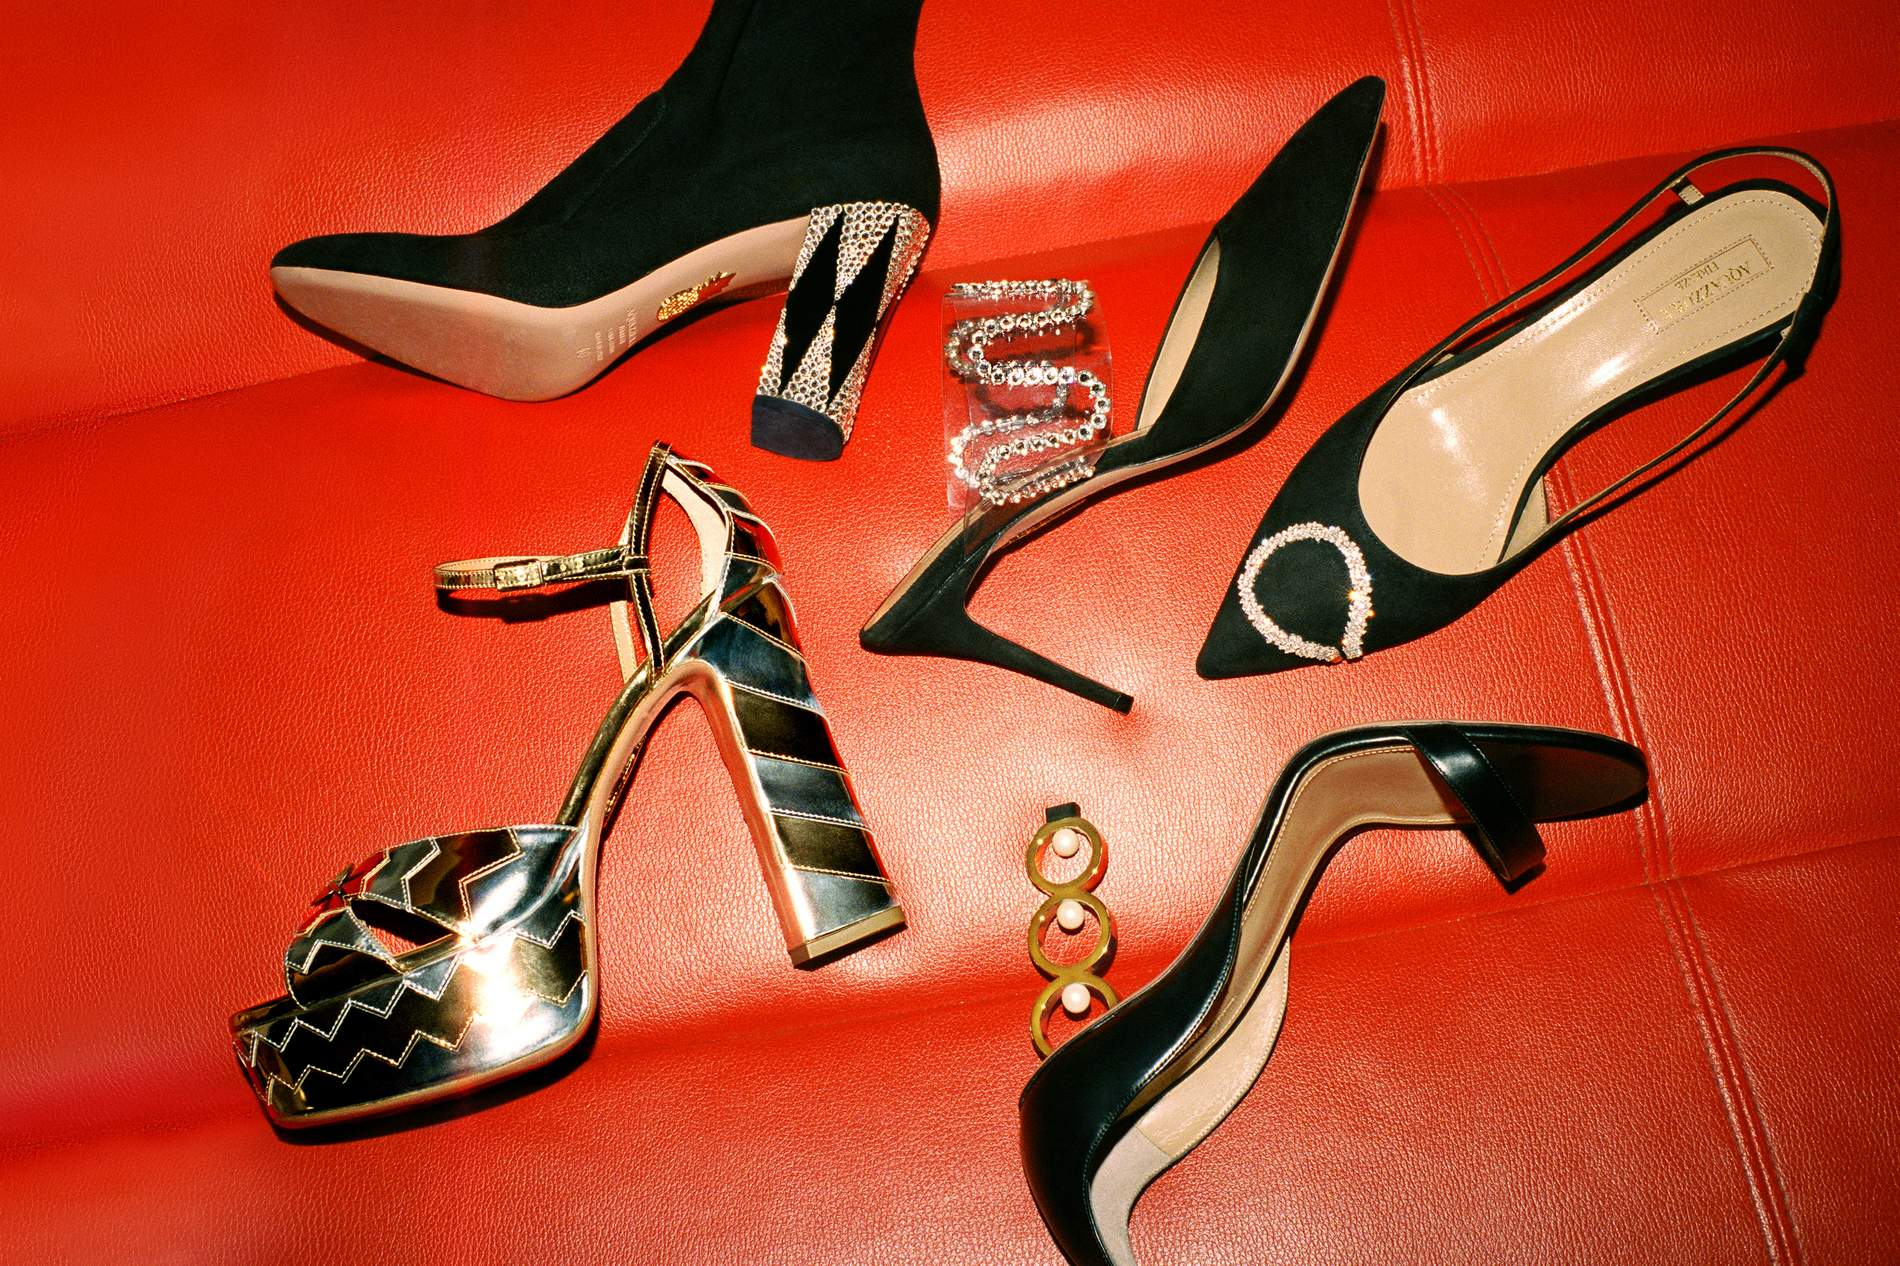 96eaf16f89b Aquazzura Shoes Capsule  Everything You Need To Know